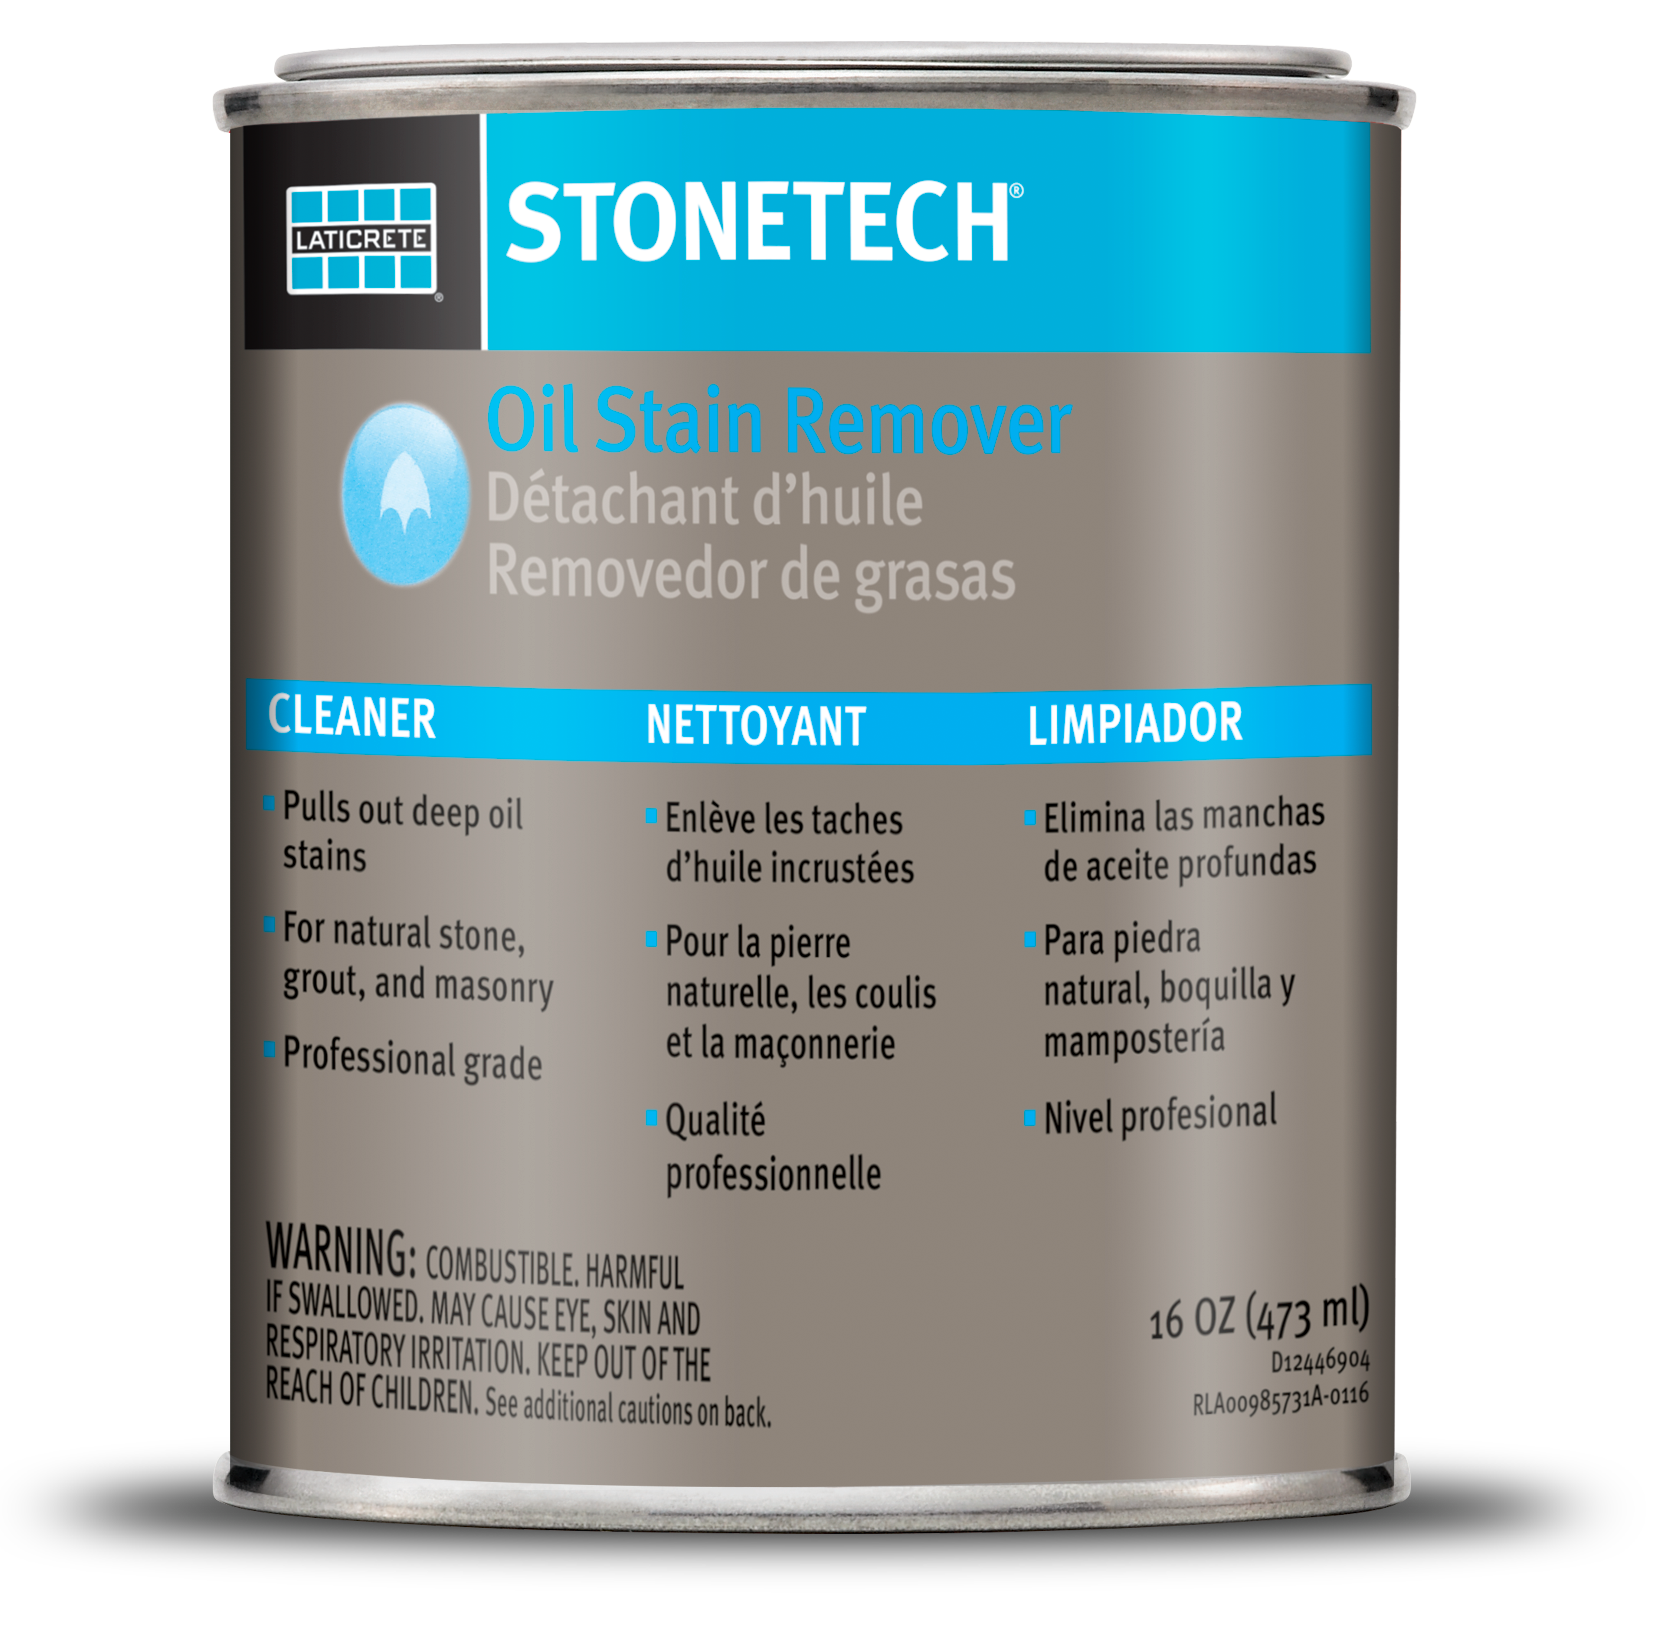 STONETECH® Oil Stain Remover